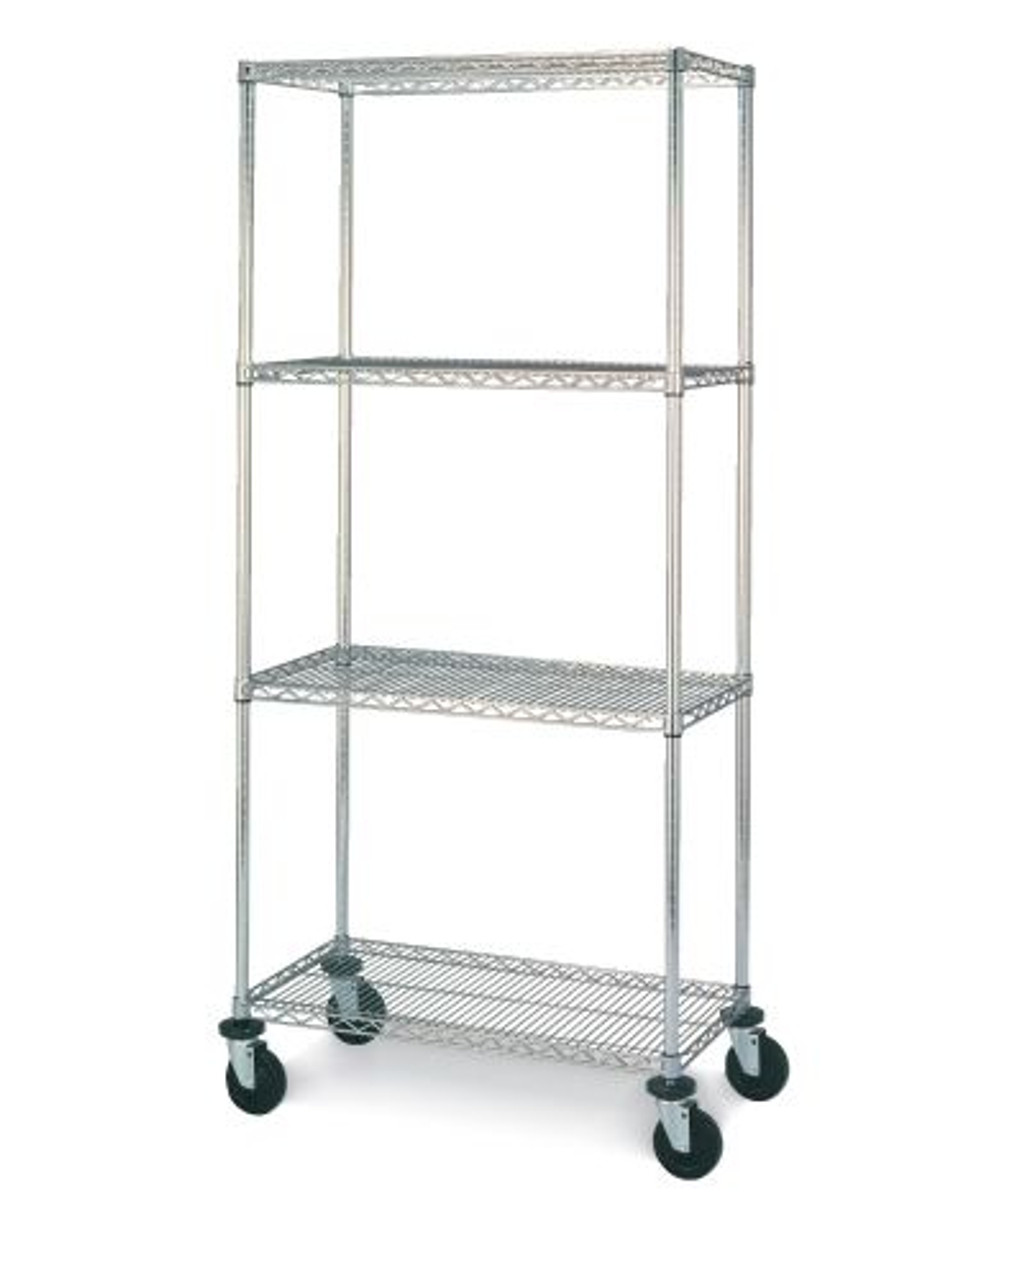 "Olympic 24"" Deep 4 Shelf Mobile Carts - Chrome - 24"" x 54"" x 59"" MJ2454-54UC"